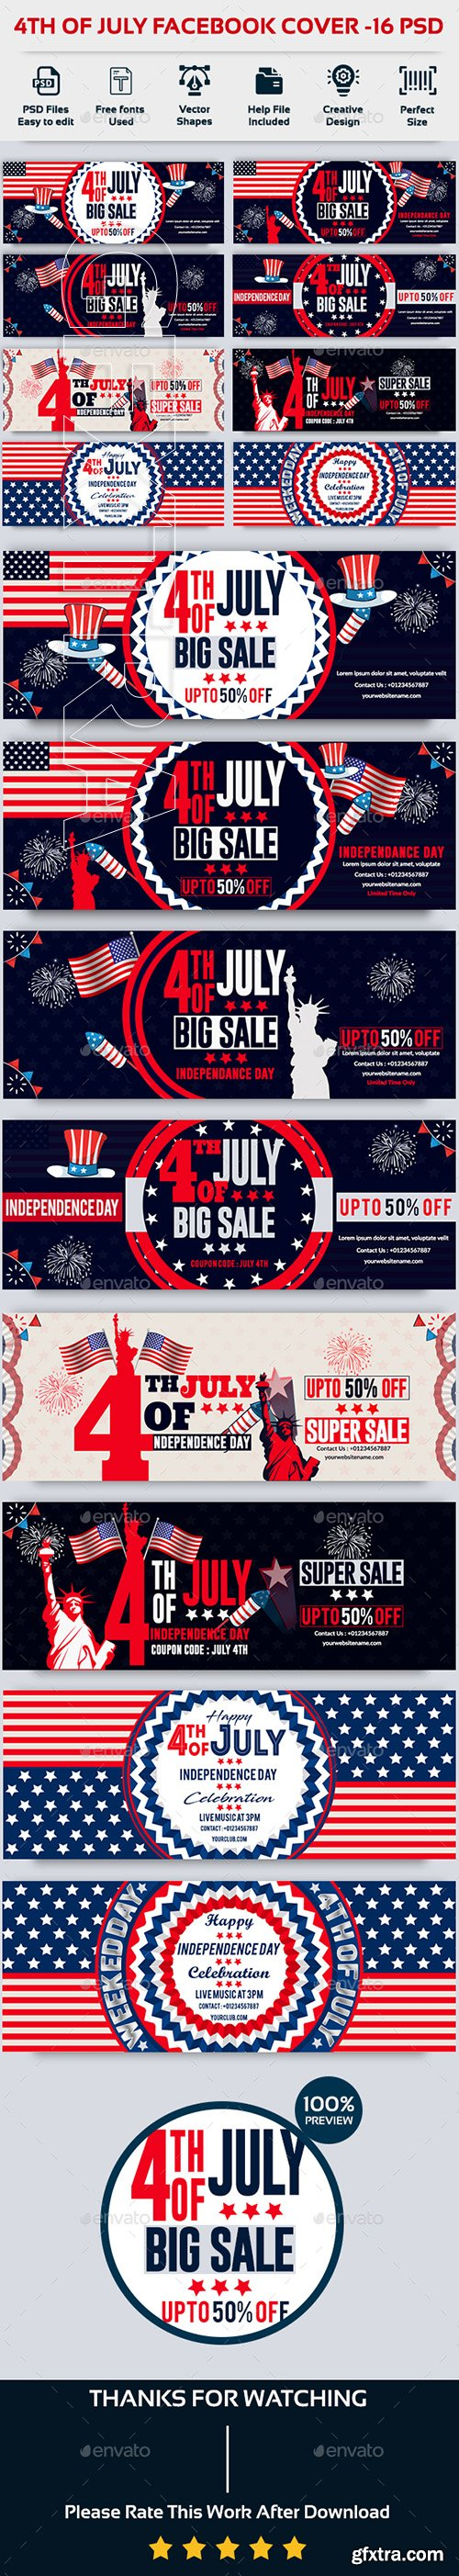 GraphicRiver - 4th of July Facebook Cover-Bundle-16 PSD 22208538